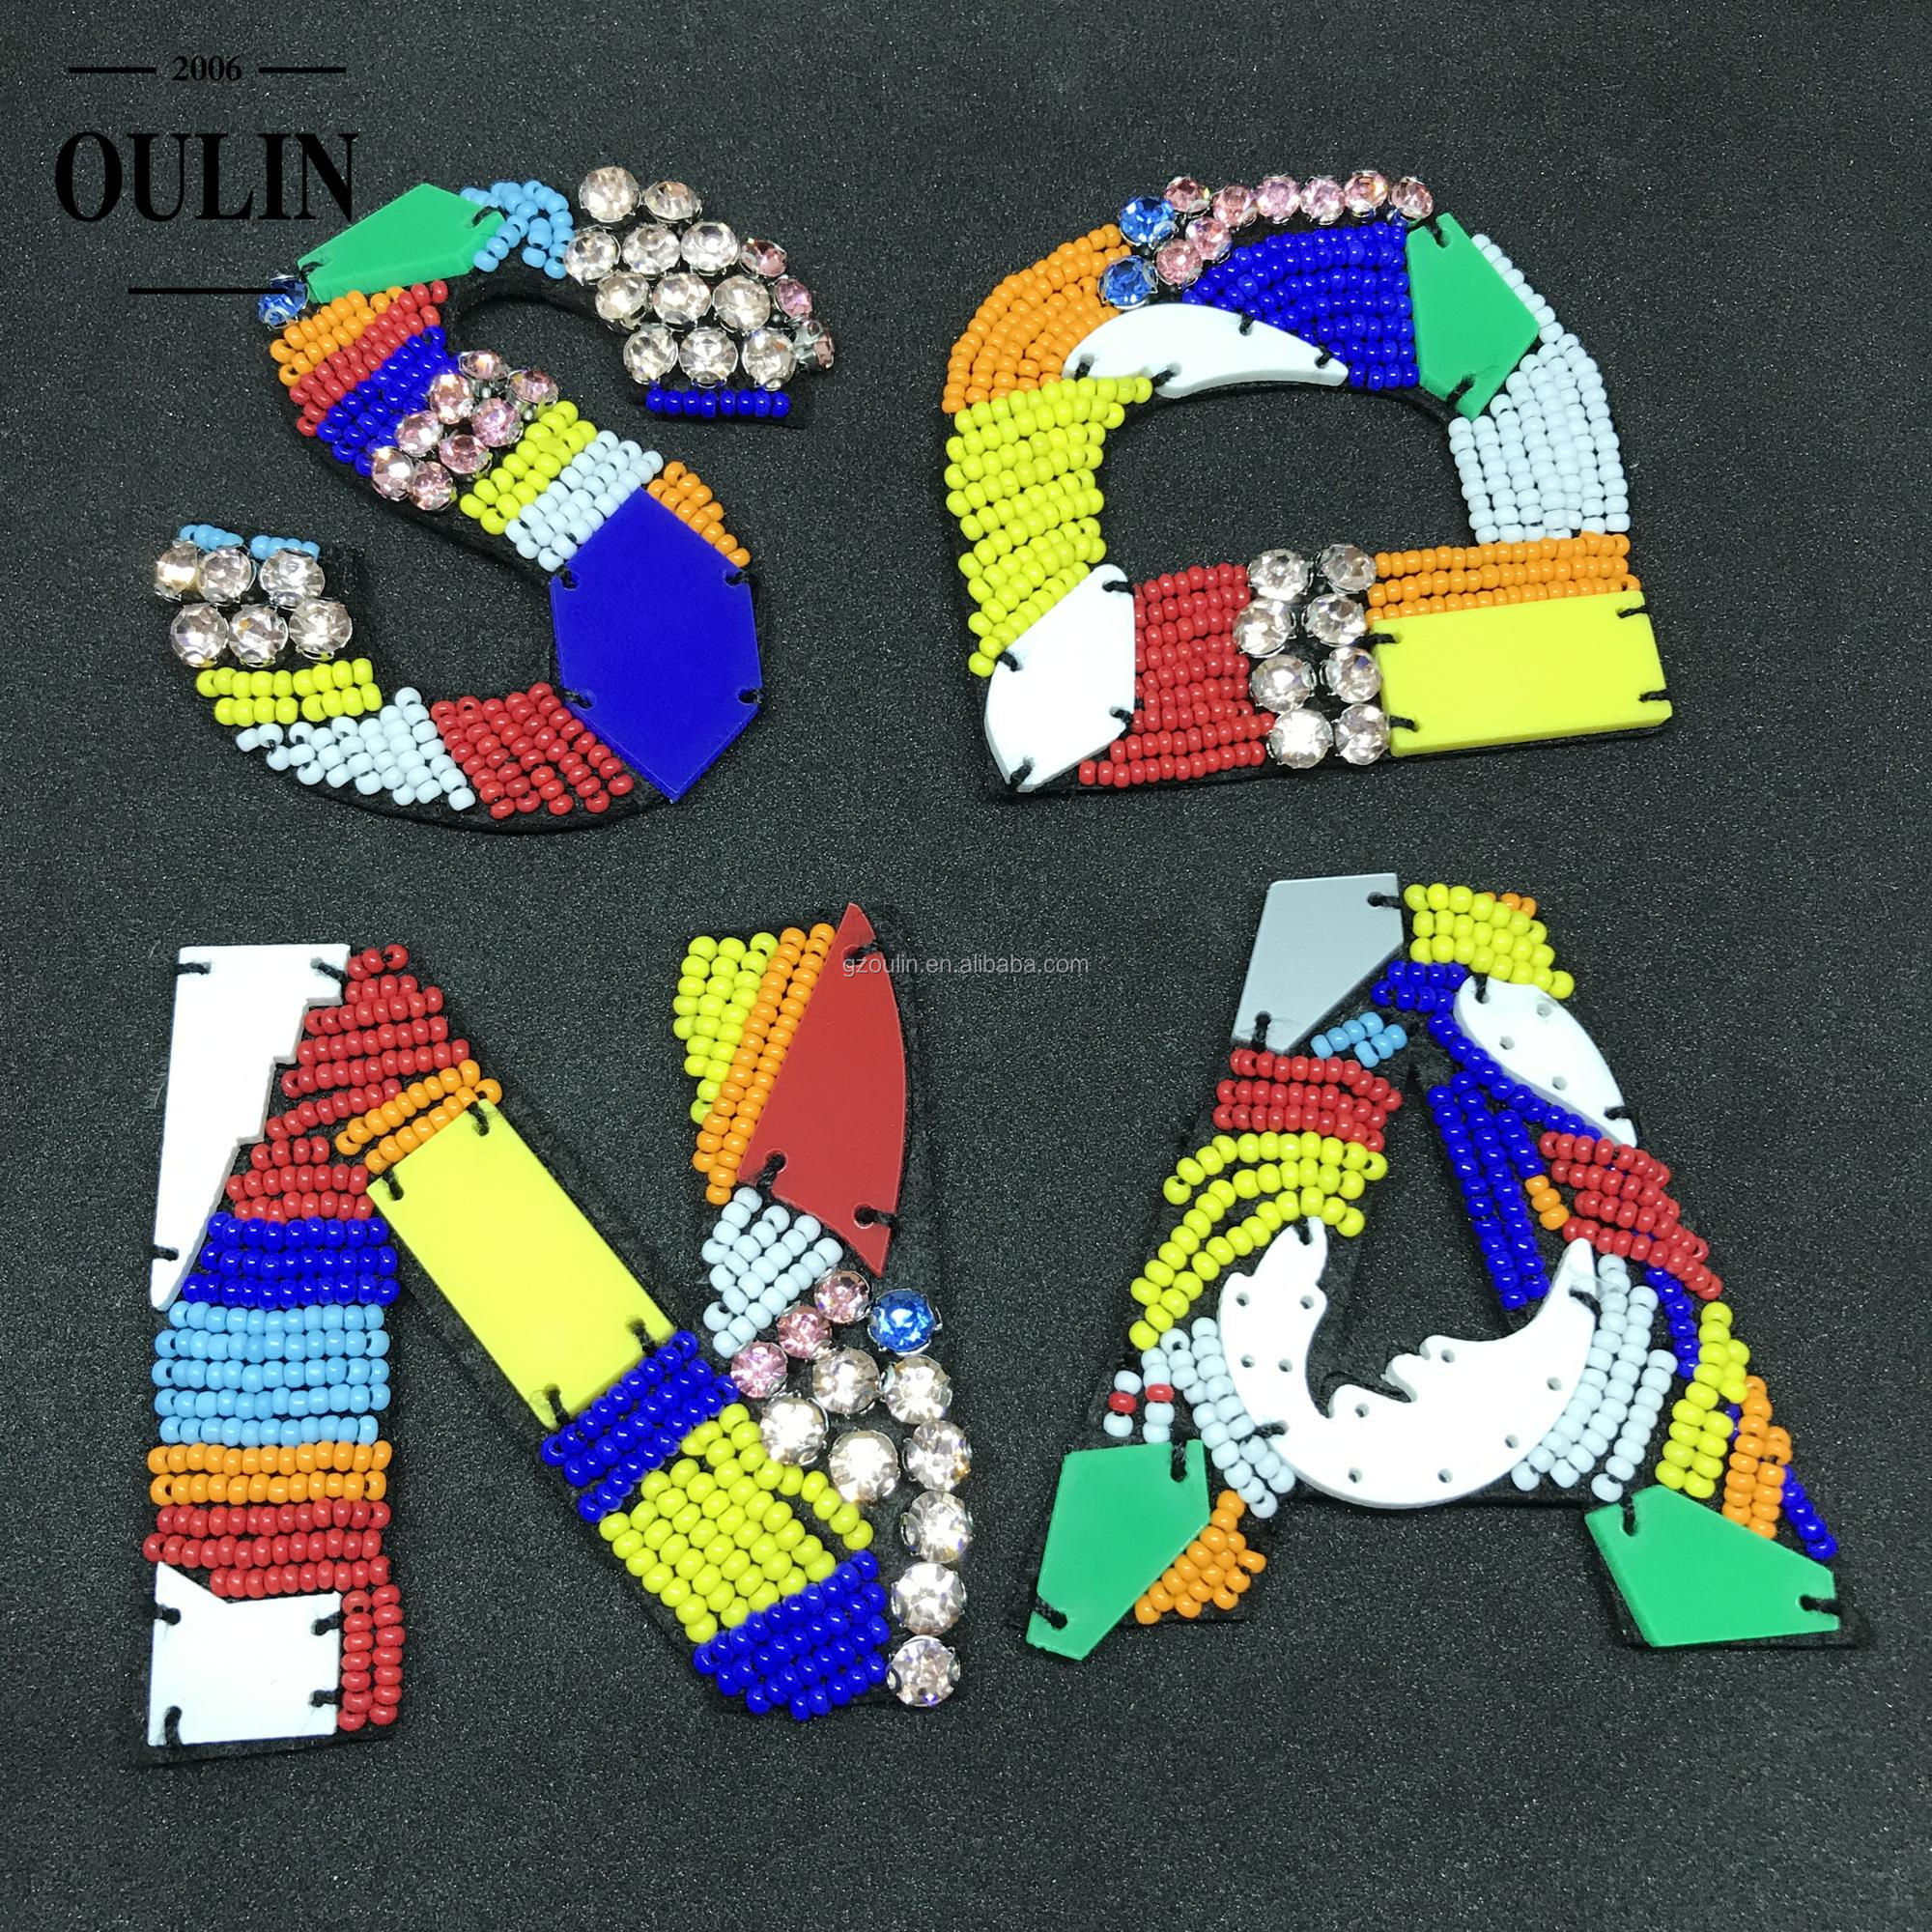 Handmade beads letters colorful letters beaded trimmings with rhinestones sewing on clothes letters decoration